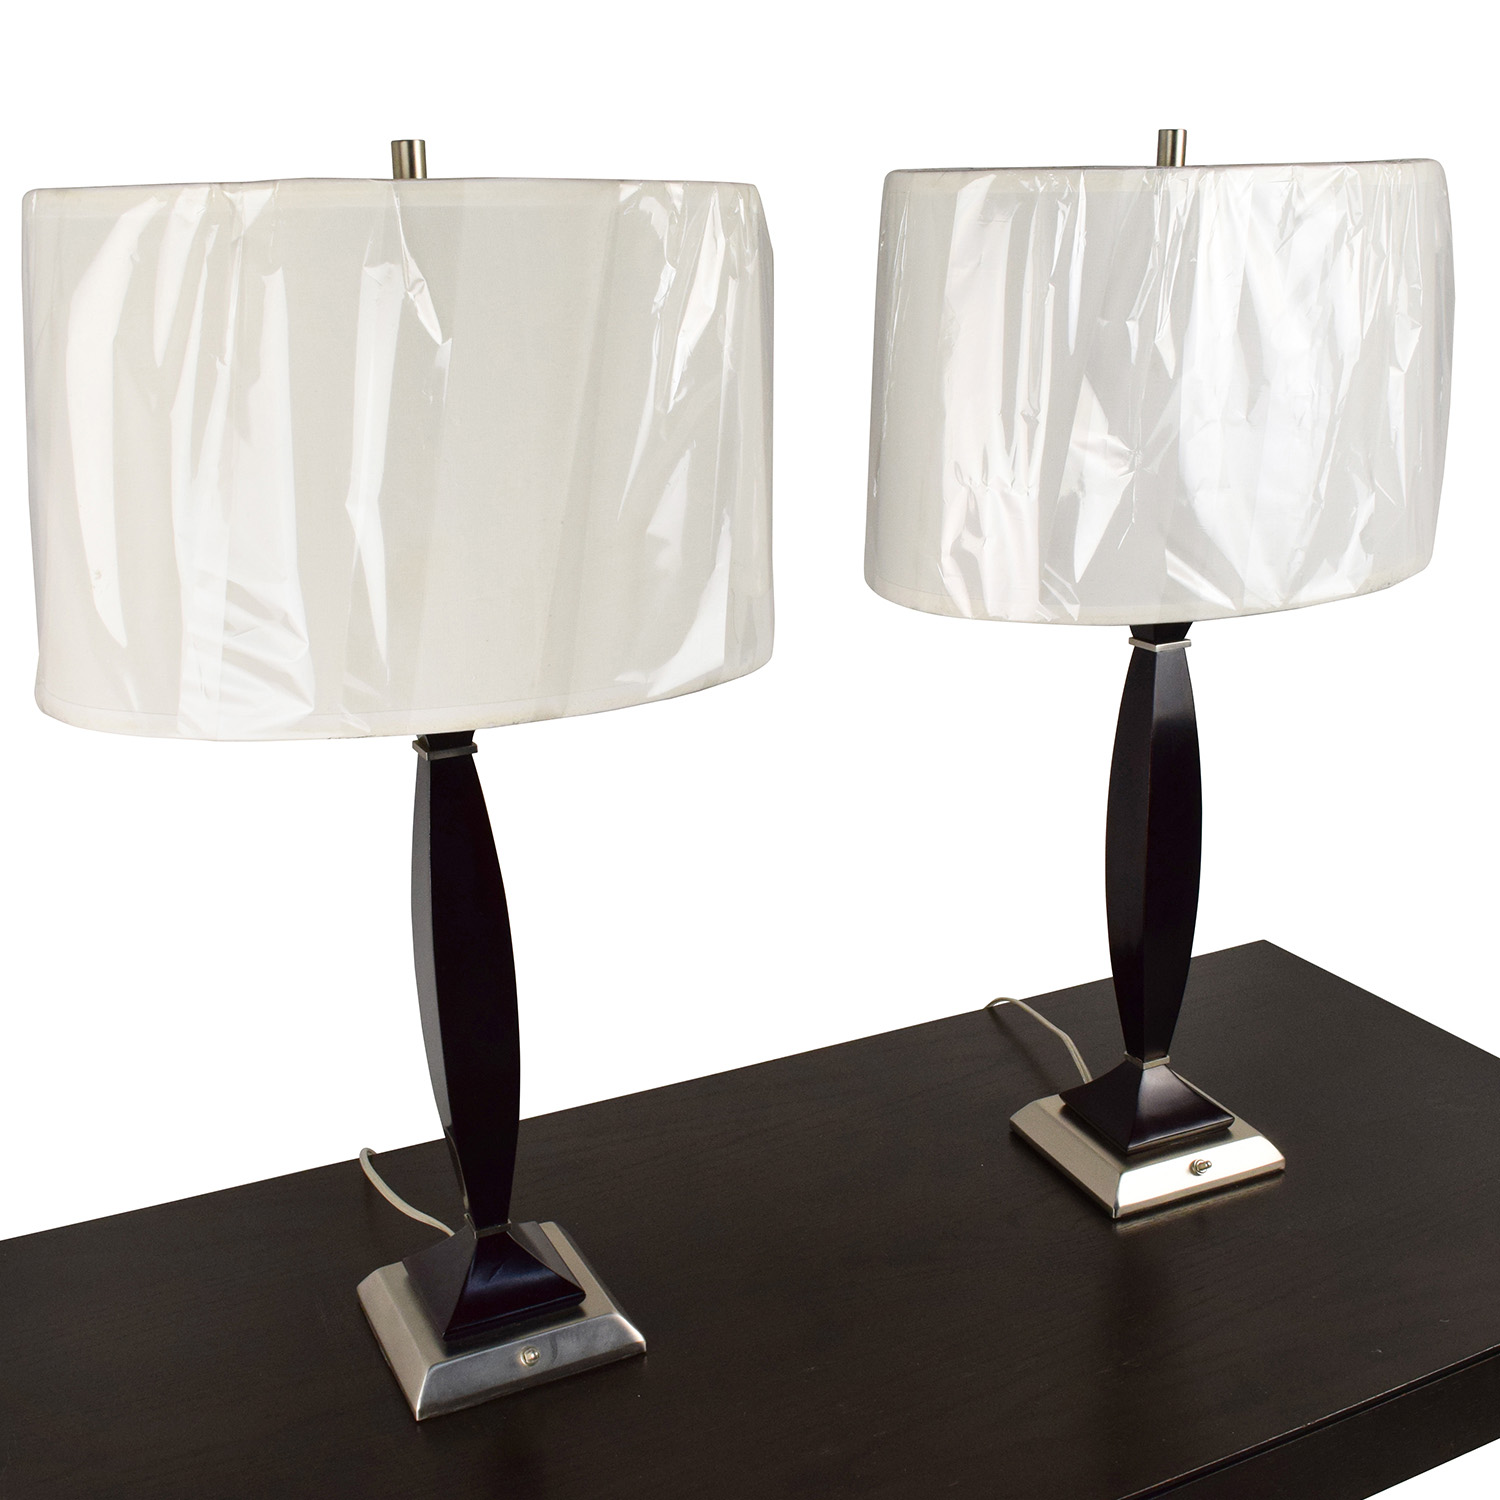 79% OFF   Gracious Home Gracious Home Side Lamps / Decor